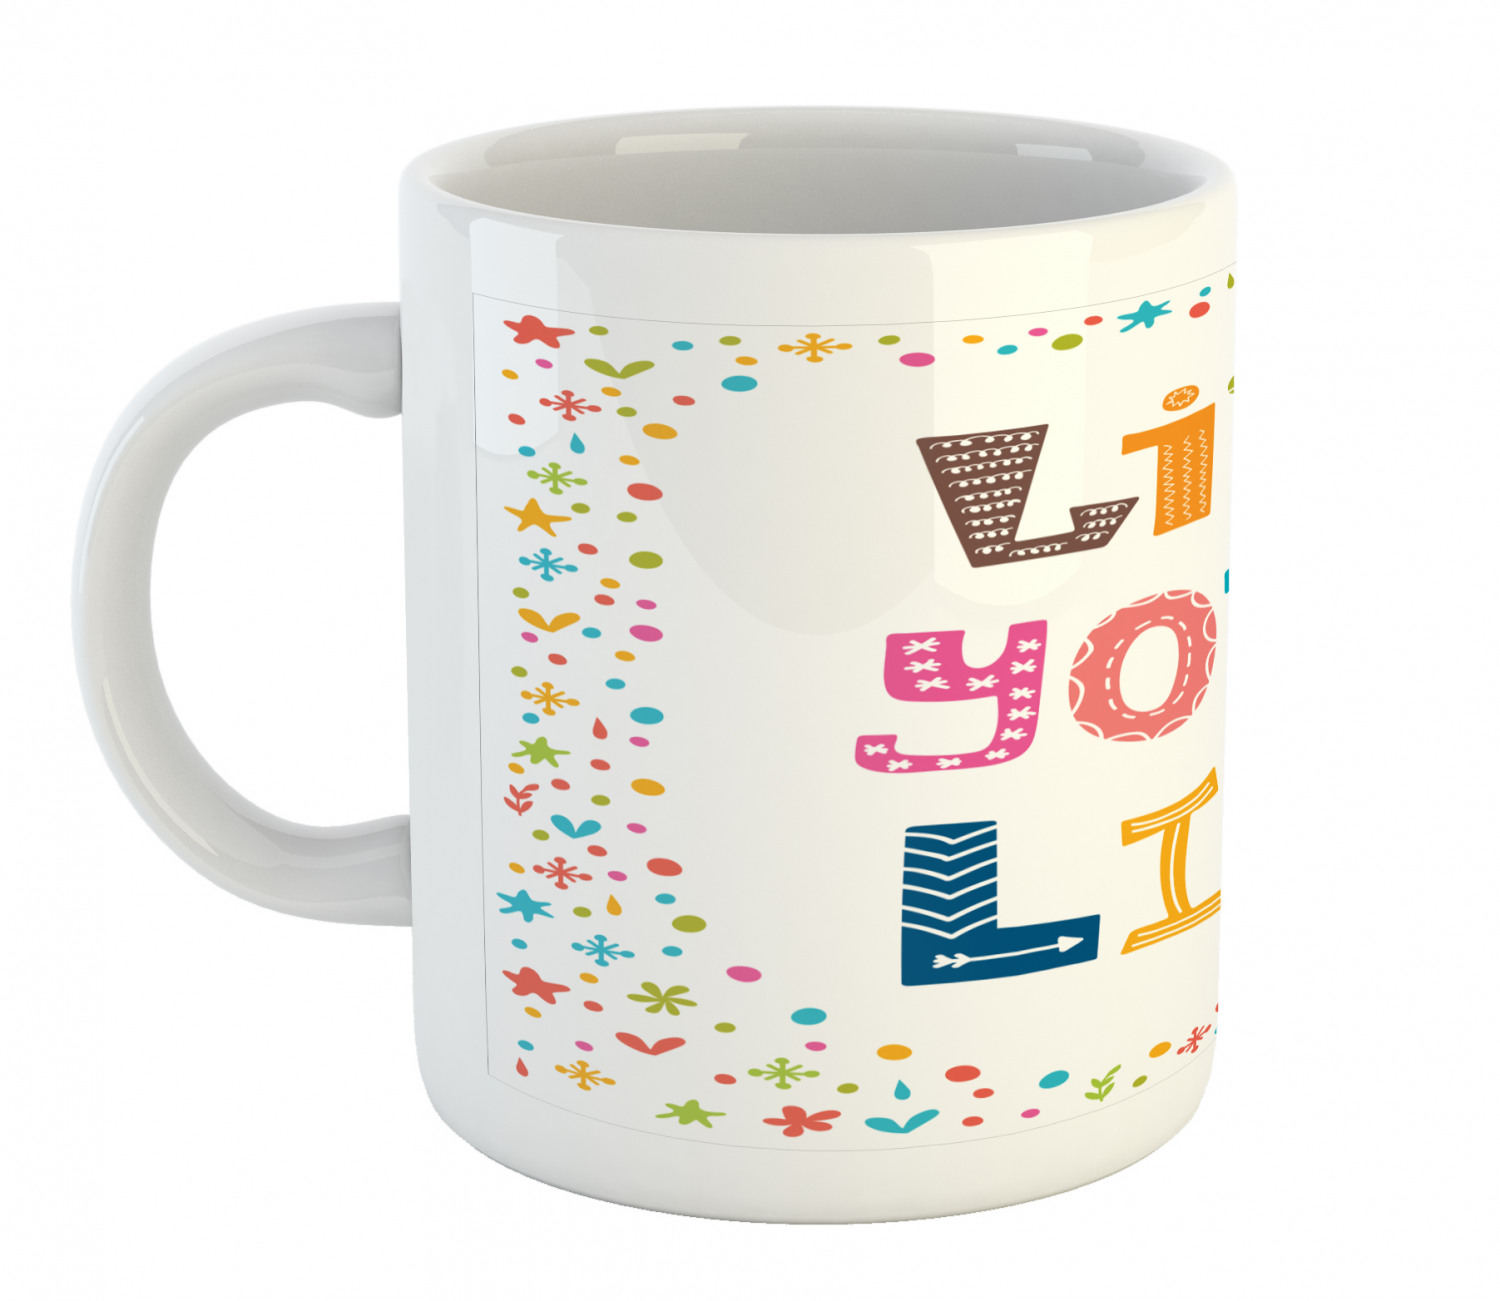 11 oz Details about  /Ambesonne Saying Ceramic Coffee Mug Cup for Water Tea Drinks